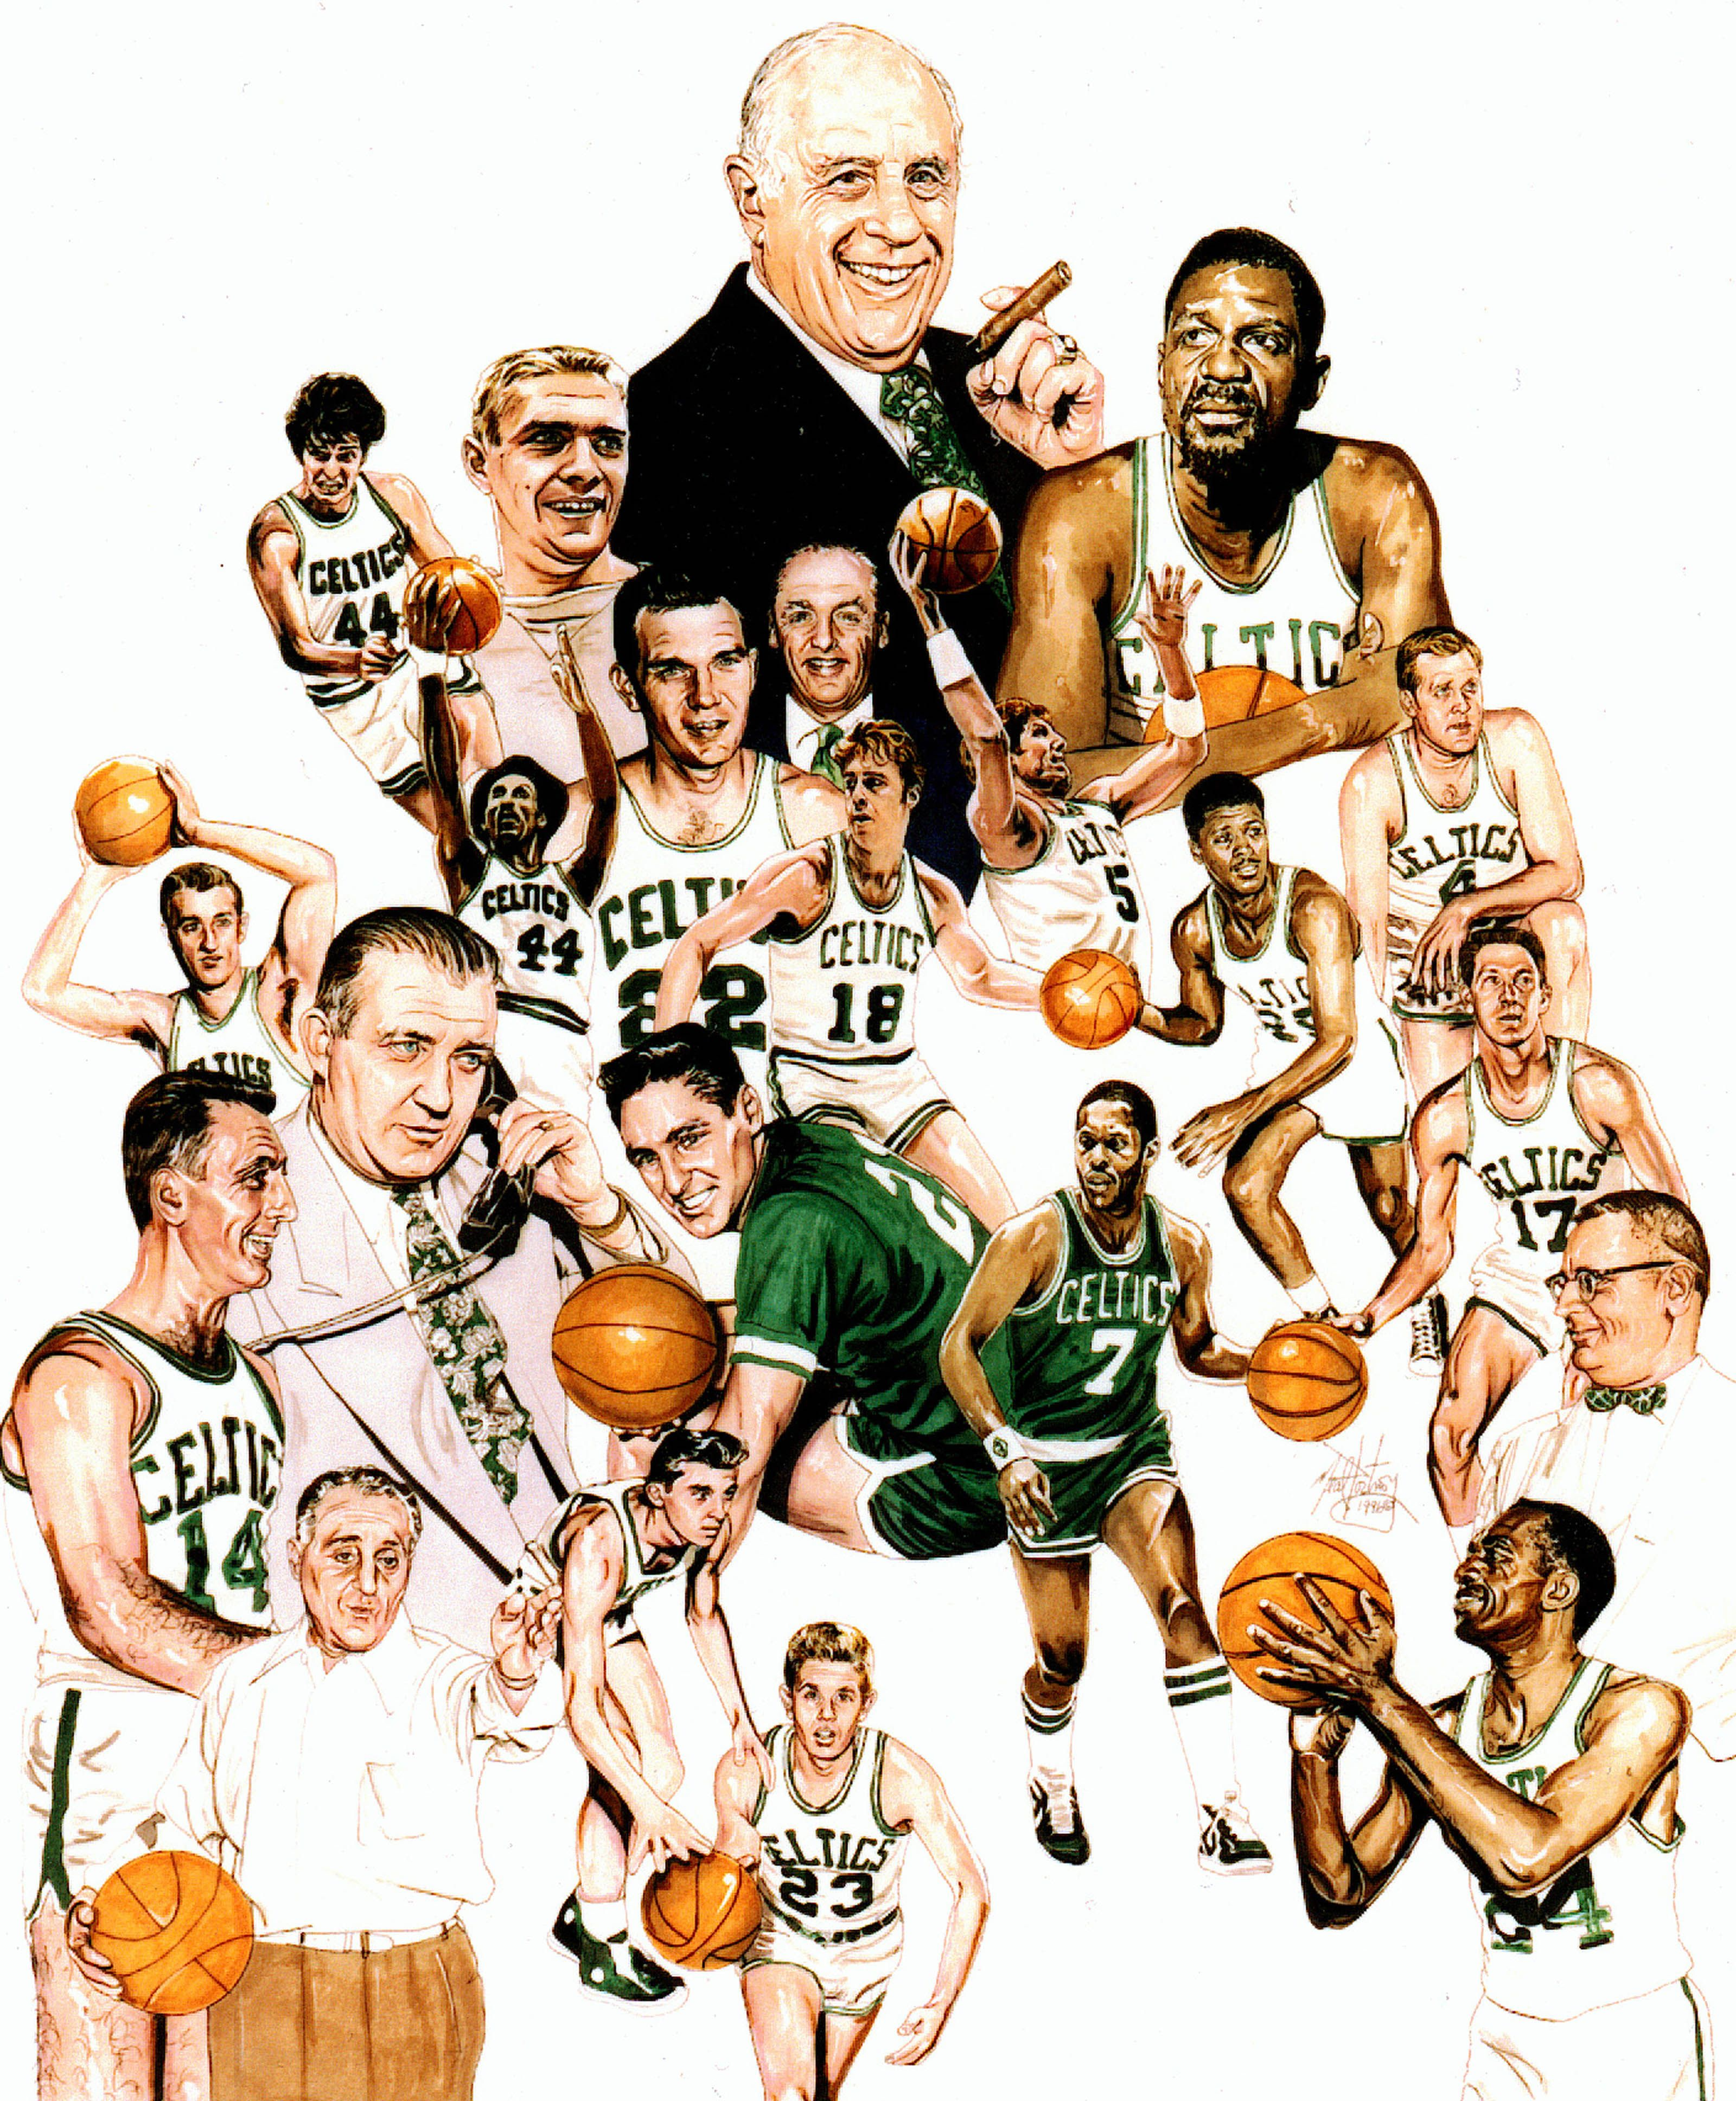 307c229fe7df This is an illustration I did featuring Boston Celtics players and members  who are in the NBA Hall of Fame prior to Bird